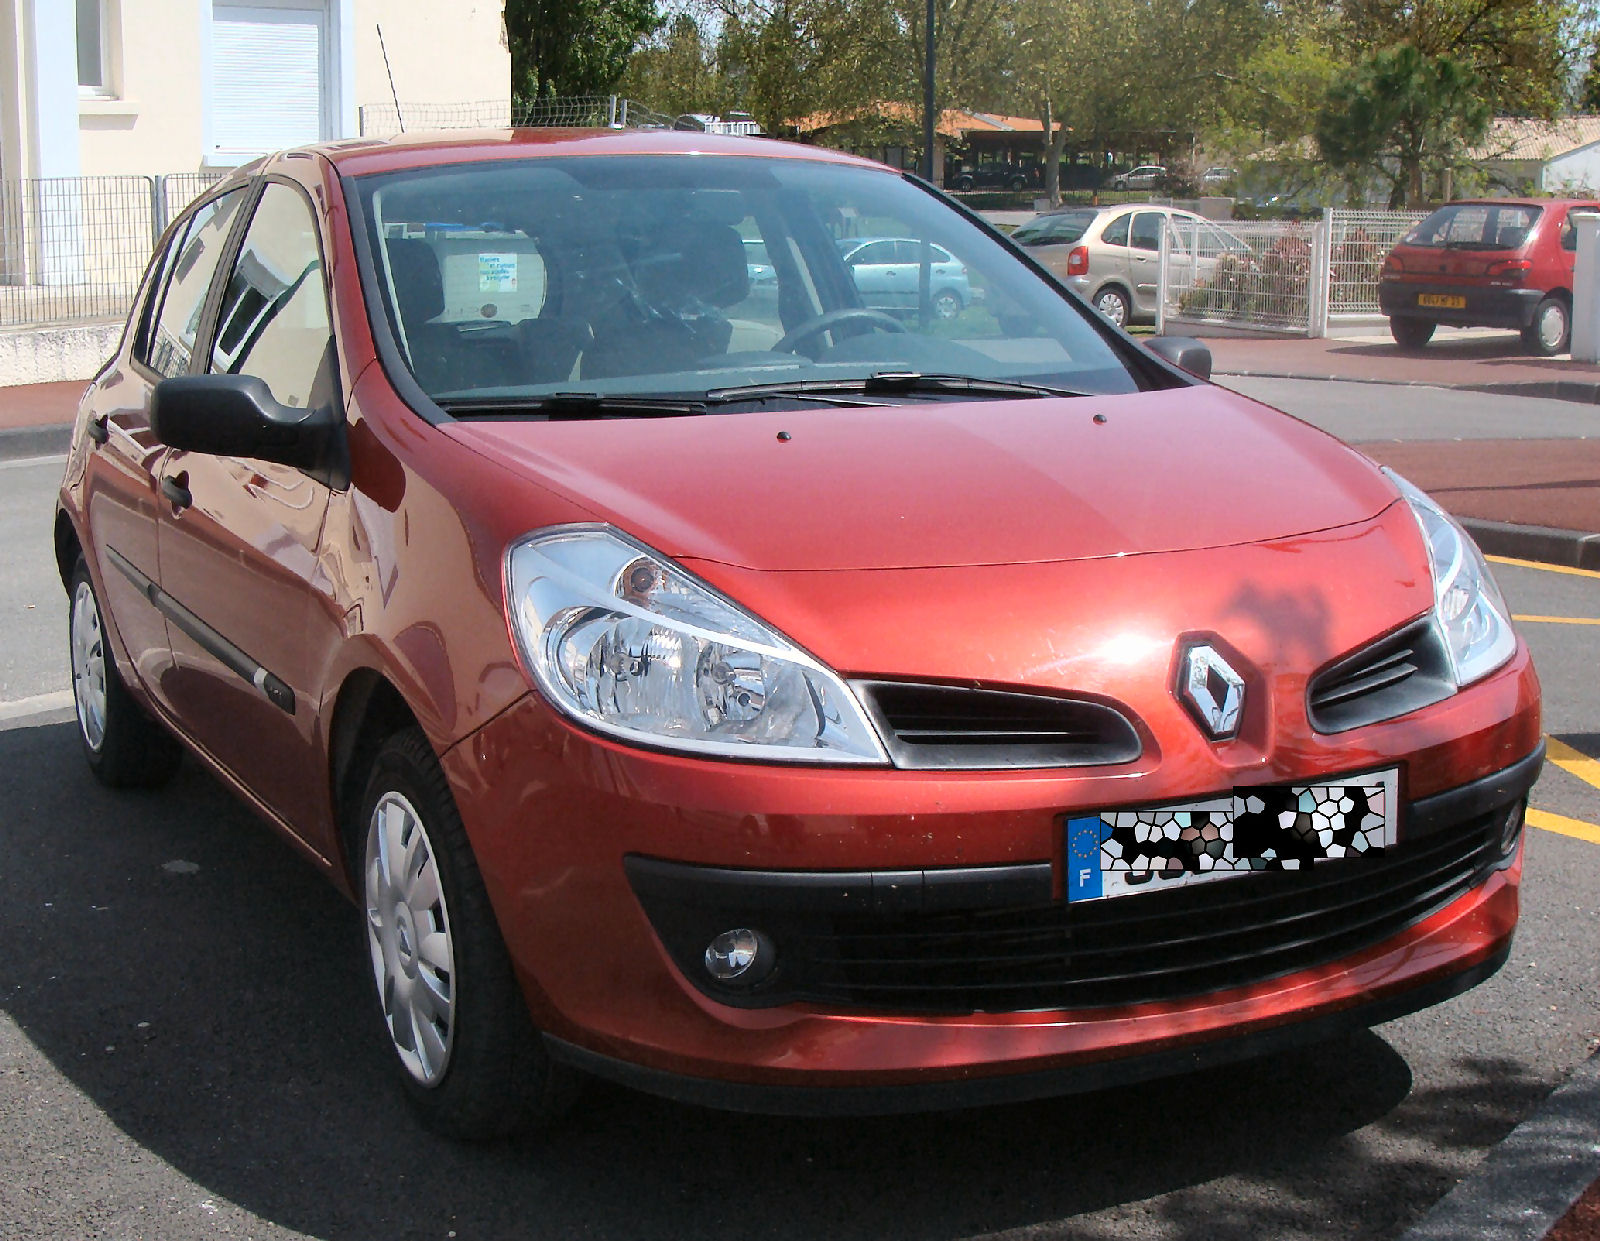 rouge avd 8930a-renault clio iii 1 5 dci 70 cft pk clim expression 5p